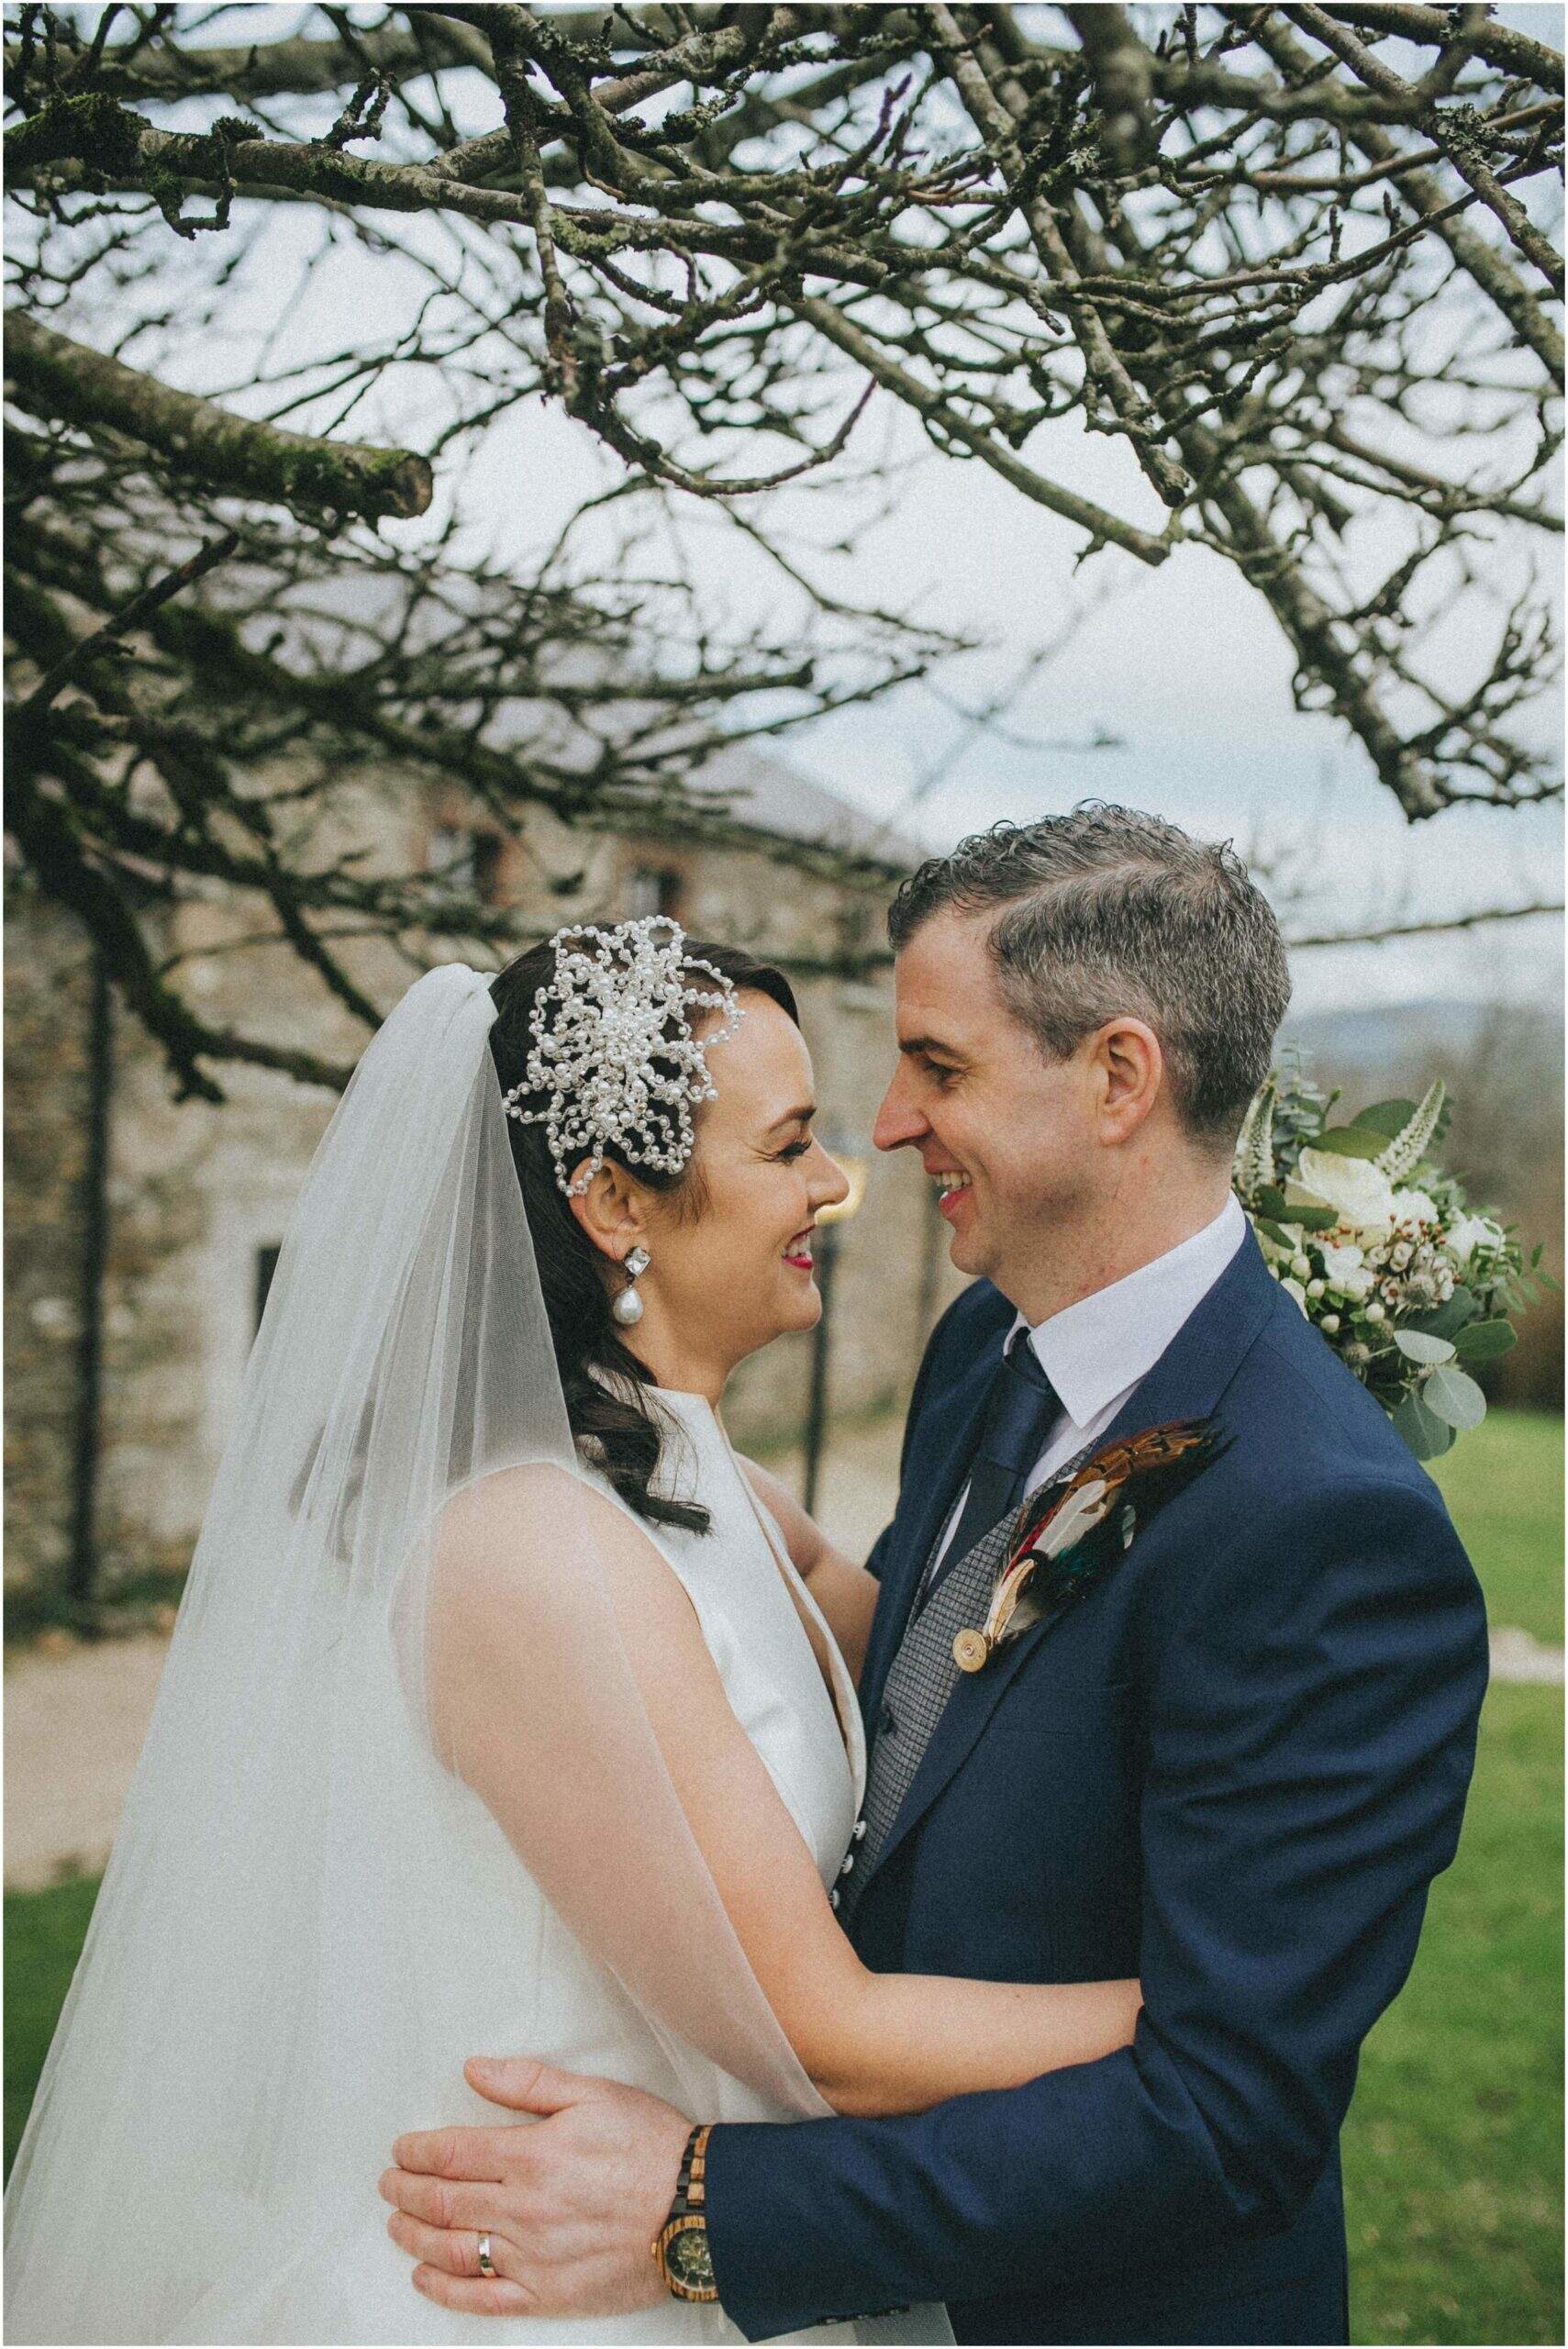 Ballybeg house wicklow fun relaxed wedding00111 scaled - Fun and Relaxed wedding and elopement photography in Ireland, perfect for adventurous and outdoorsy couples